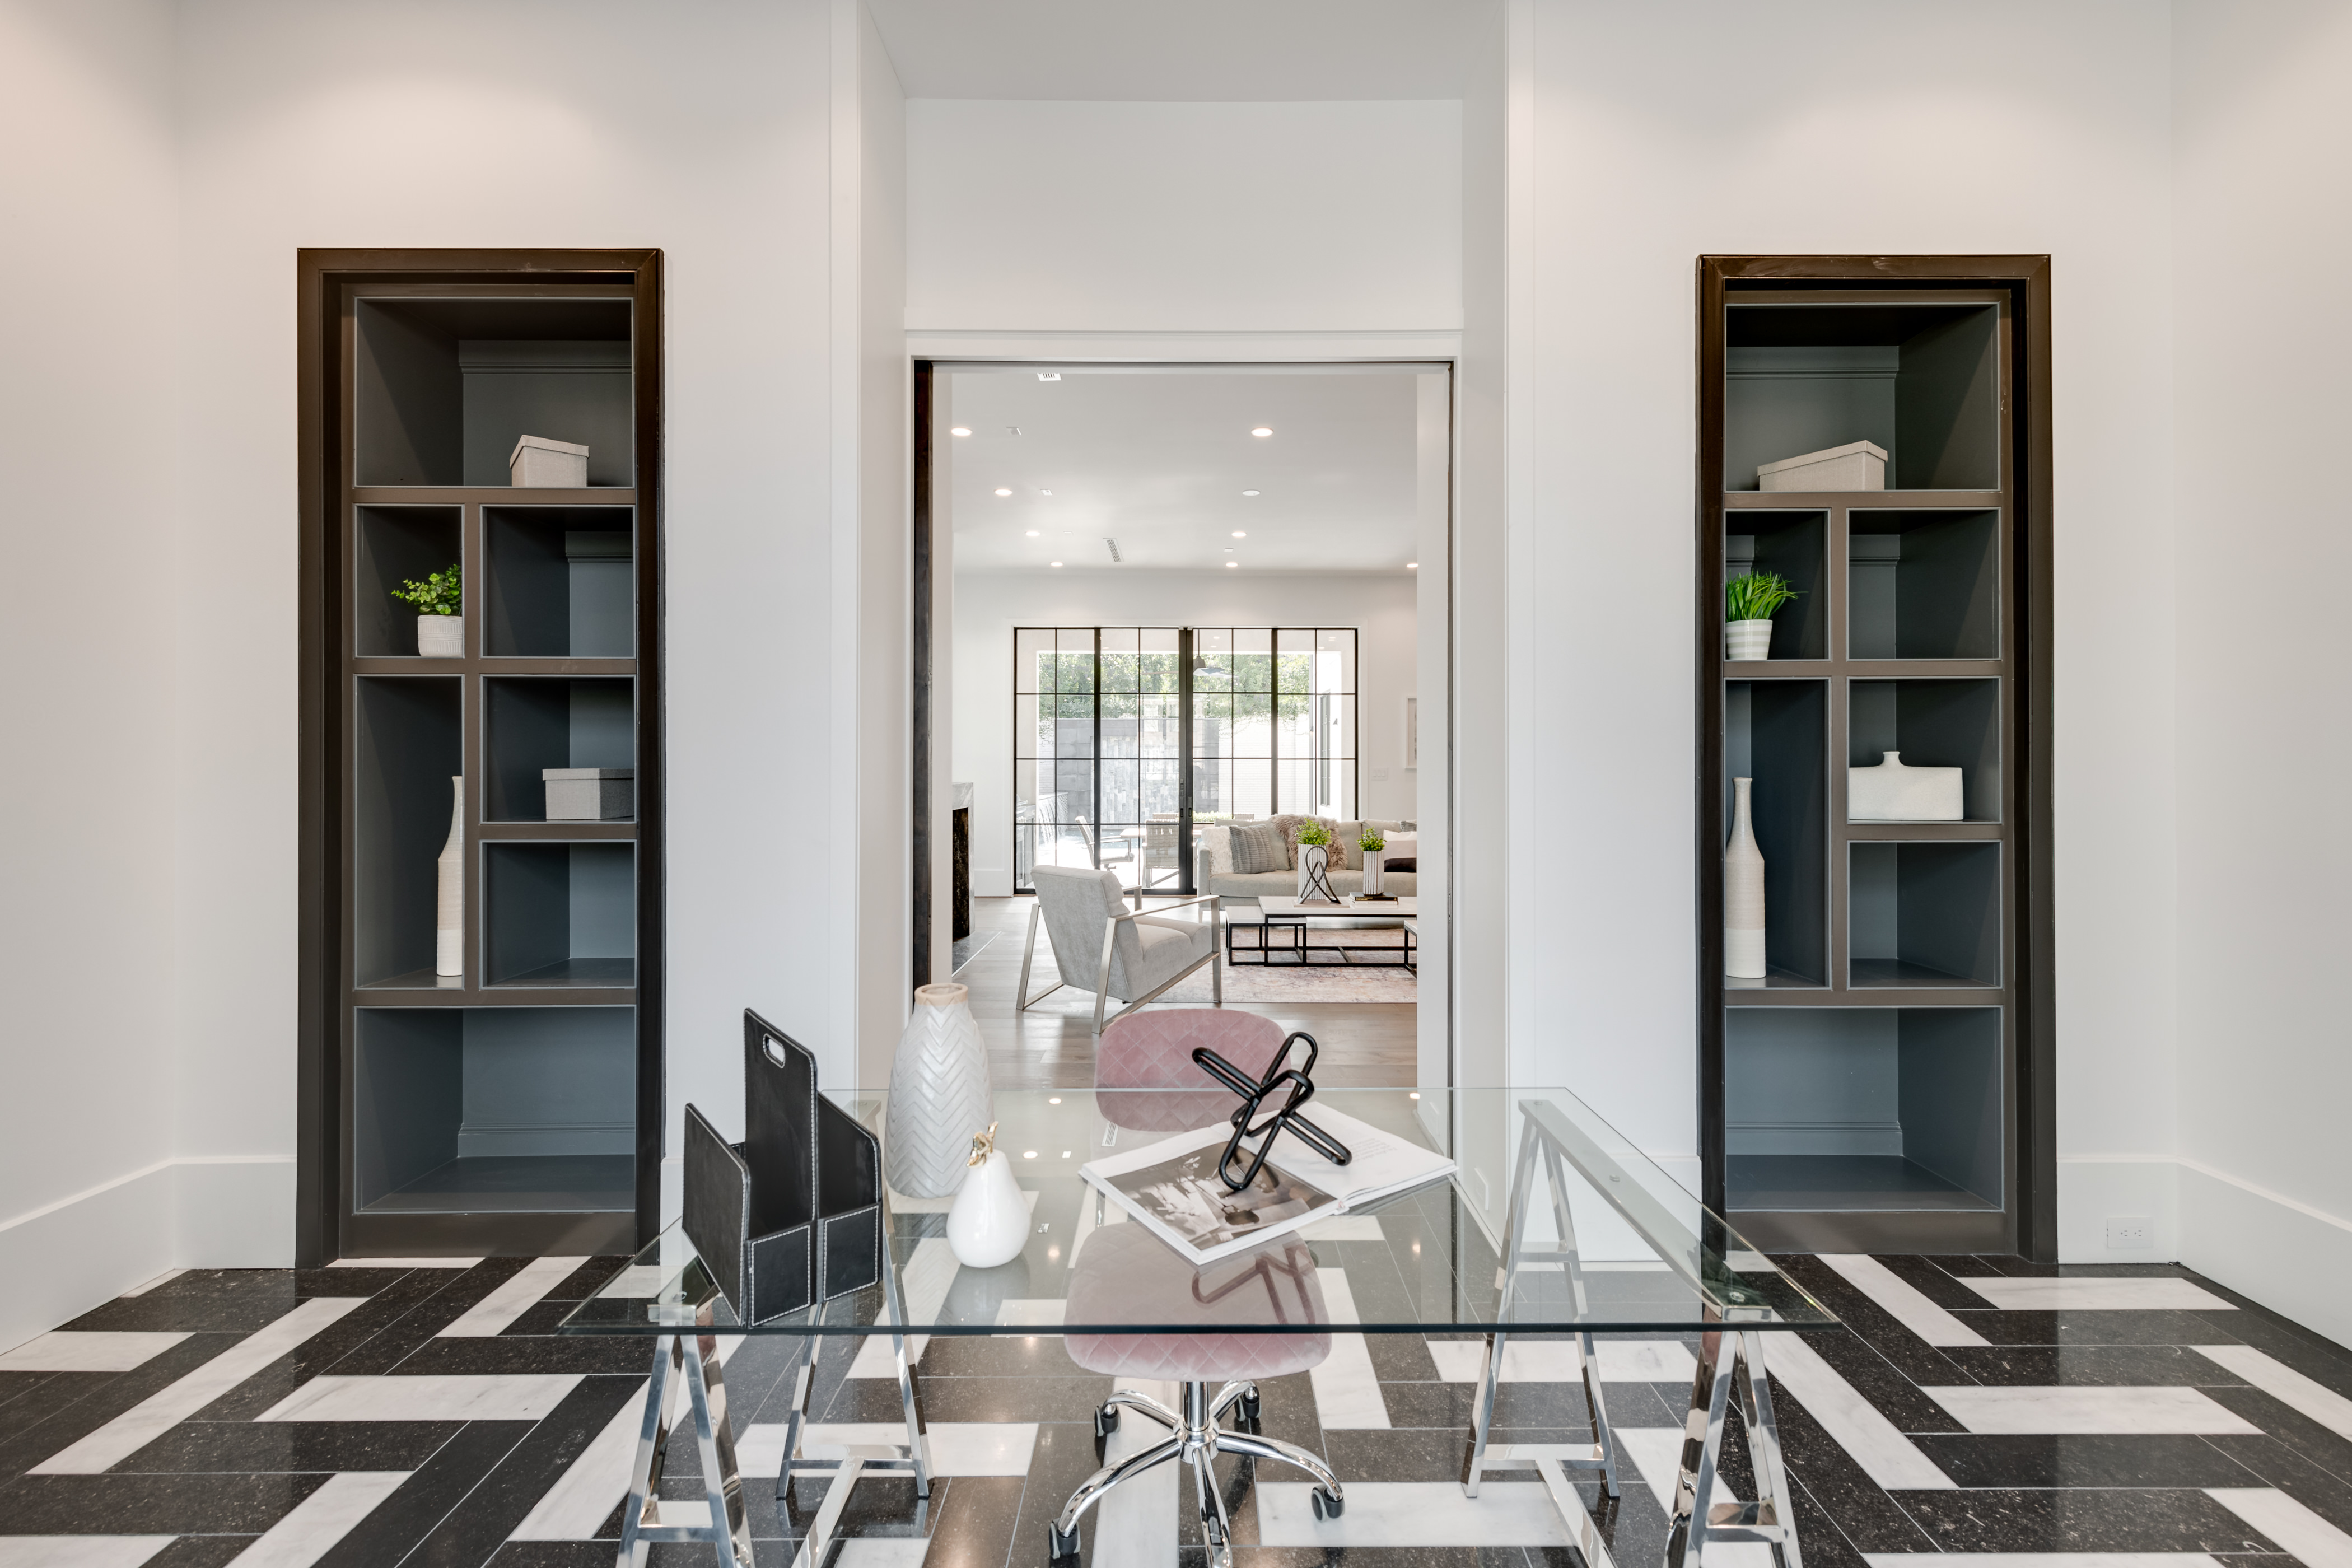 Meticulous attention to detail is evident throughout this impeccable residence in Houston's River Oaks. The light-filled living spaces include an office with a wall of windows and striking black-and-white marble floors.